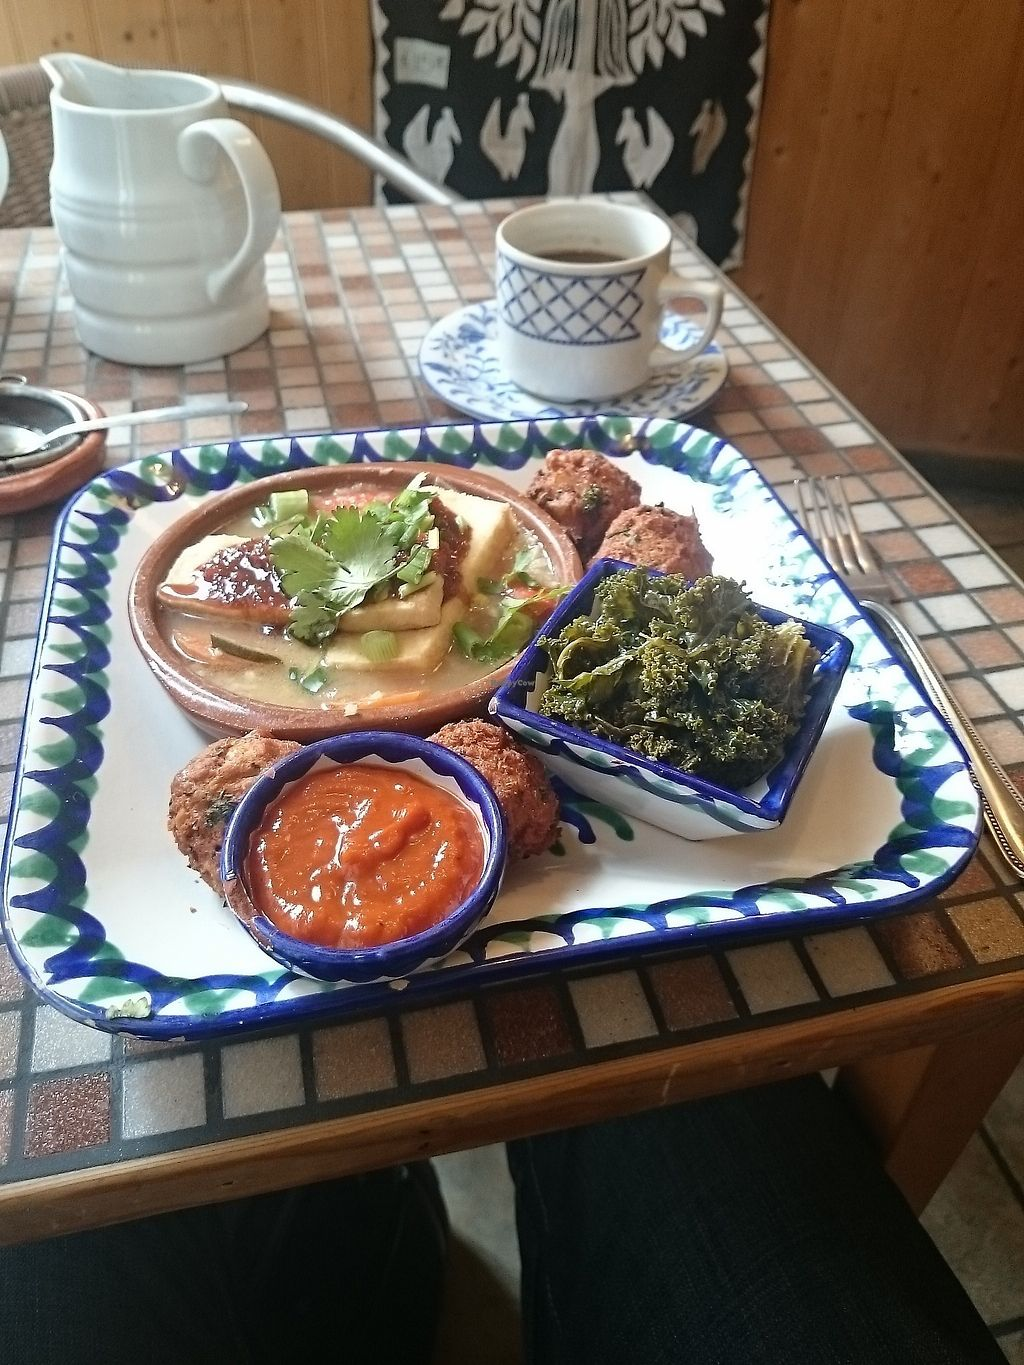 """Photo of El Piano  by <a href=""""/members/profile/thomquinoa"""">thomquinoa</a> <br/>Amazing selection of food <br/> January 17, 2018  - <a href='/contact/abuse/image/780/347745'>Report</a>"""